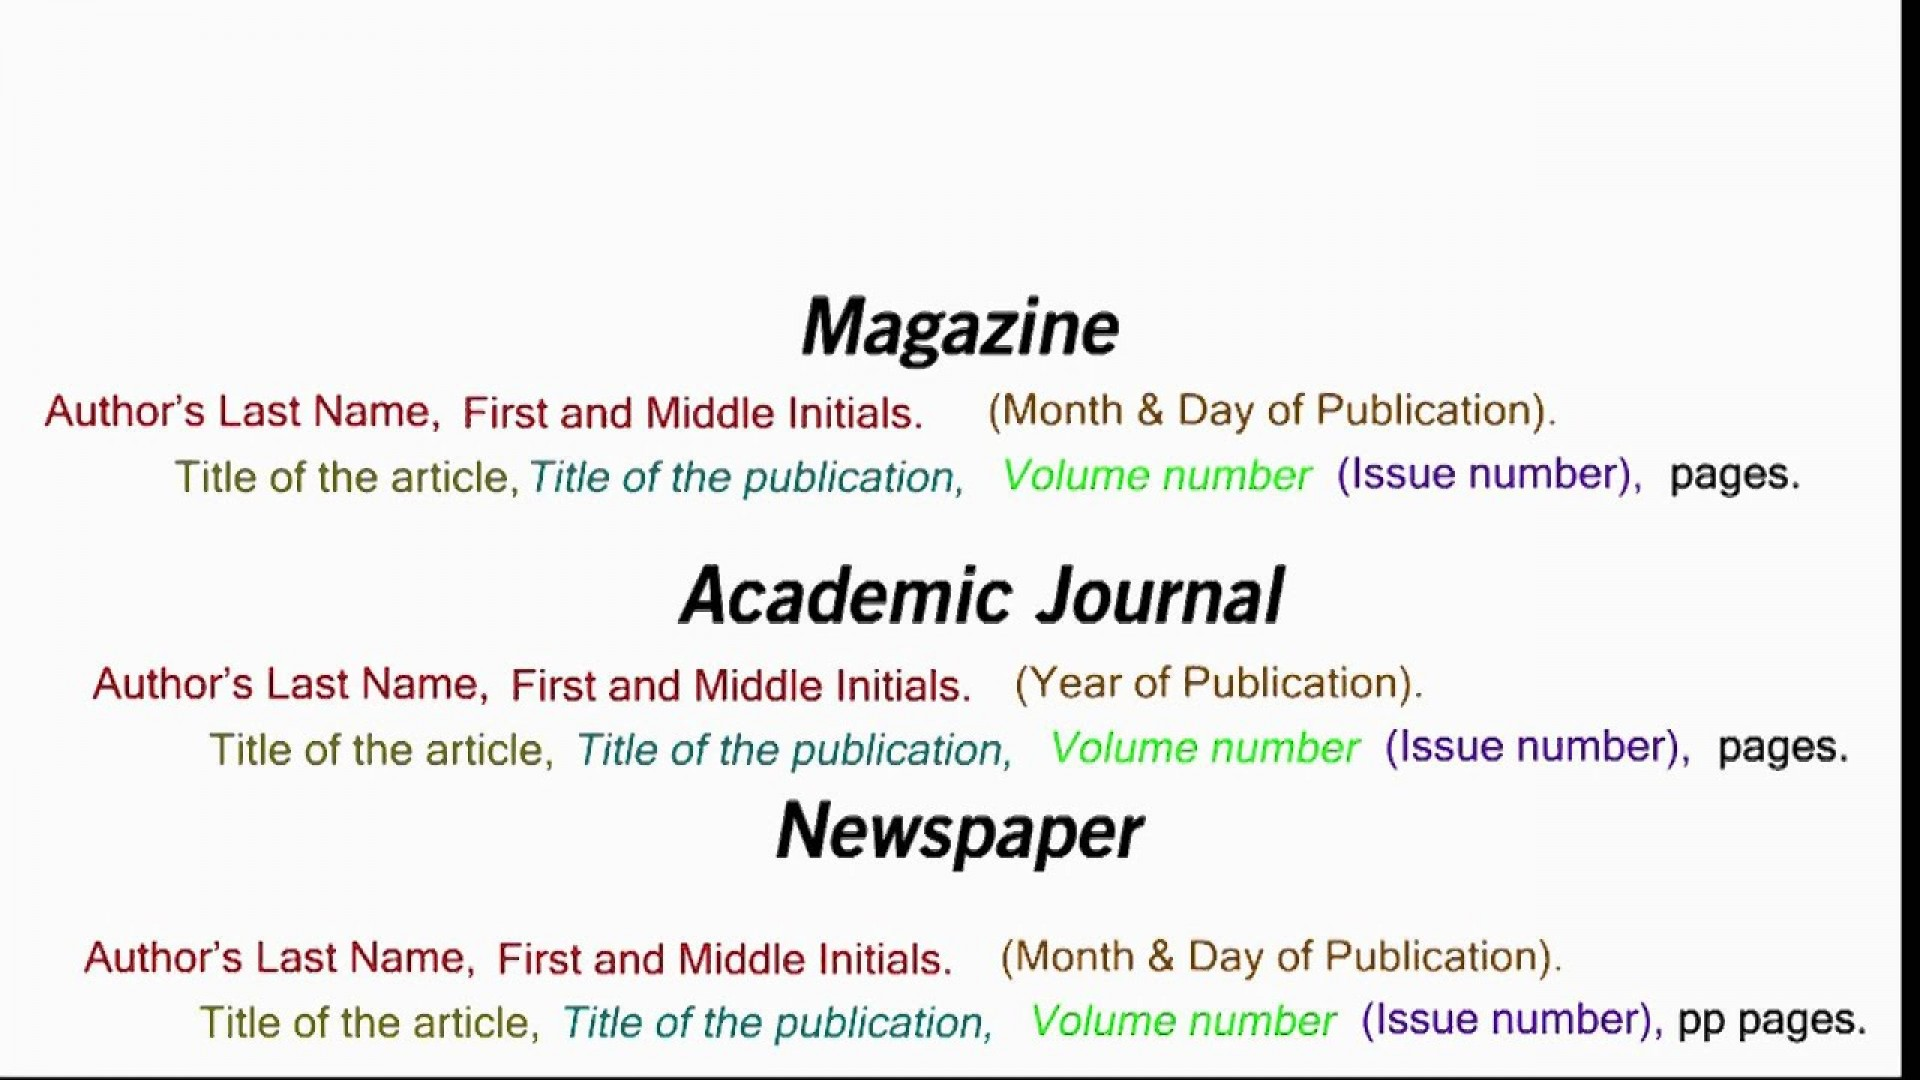 001 How To Reference Research Articles Apa Paper Sensational Cite Web Journal A Article Title In Text Online Format 1920